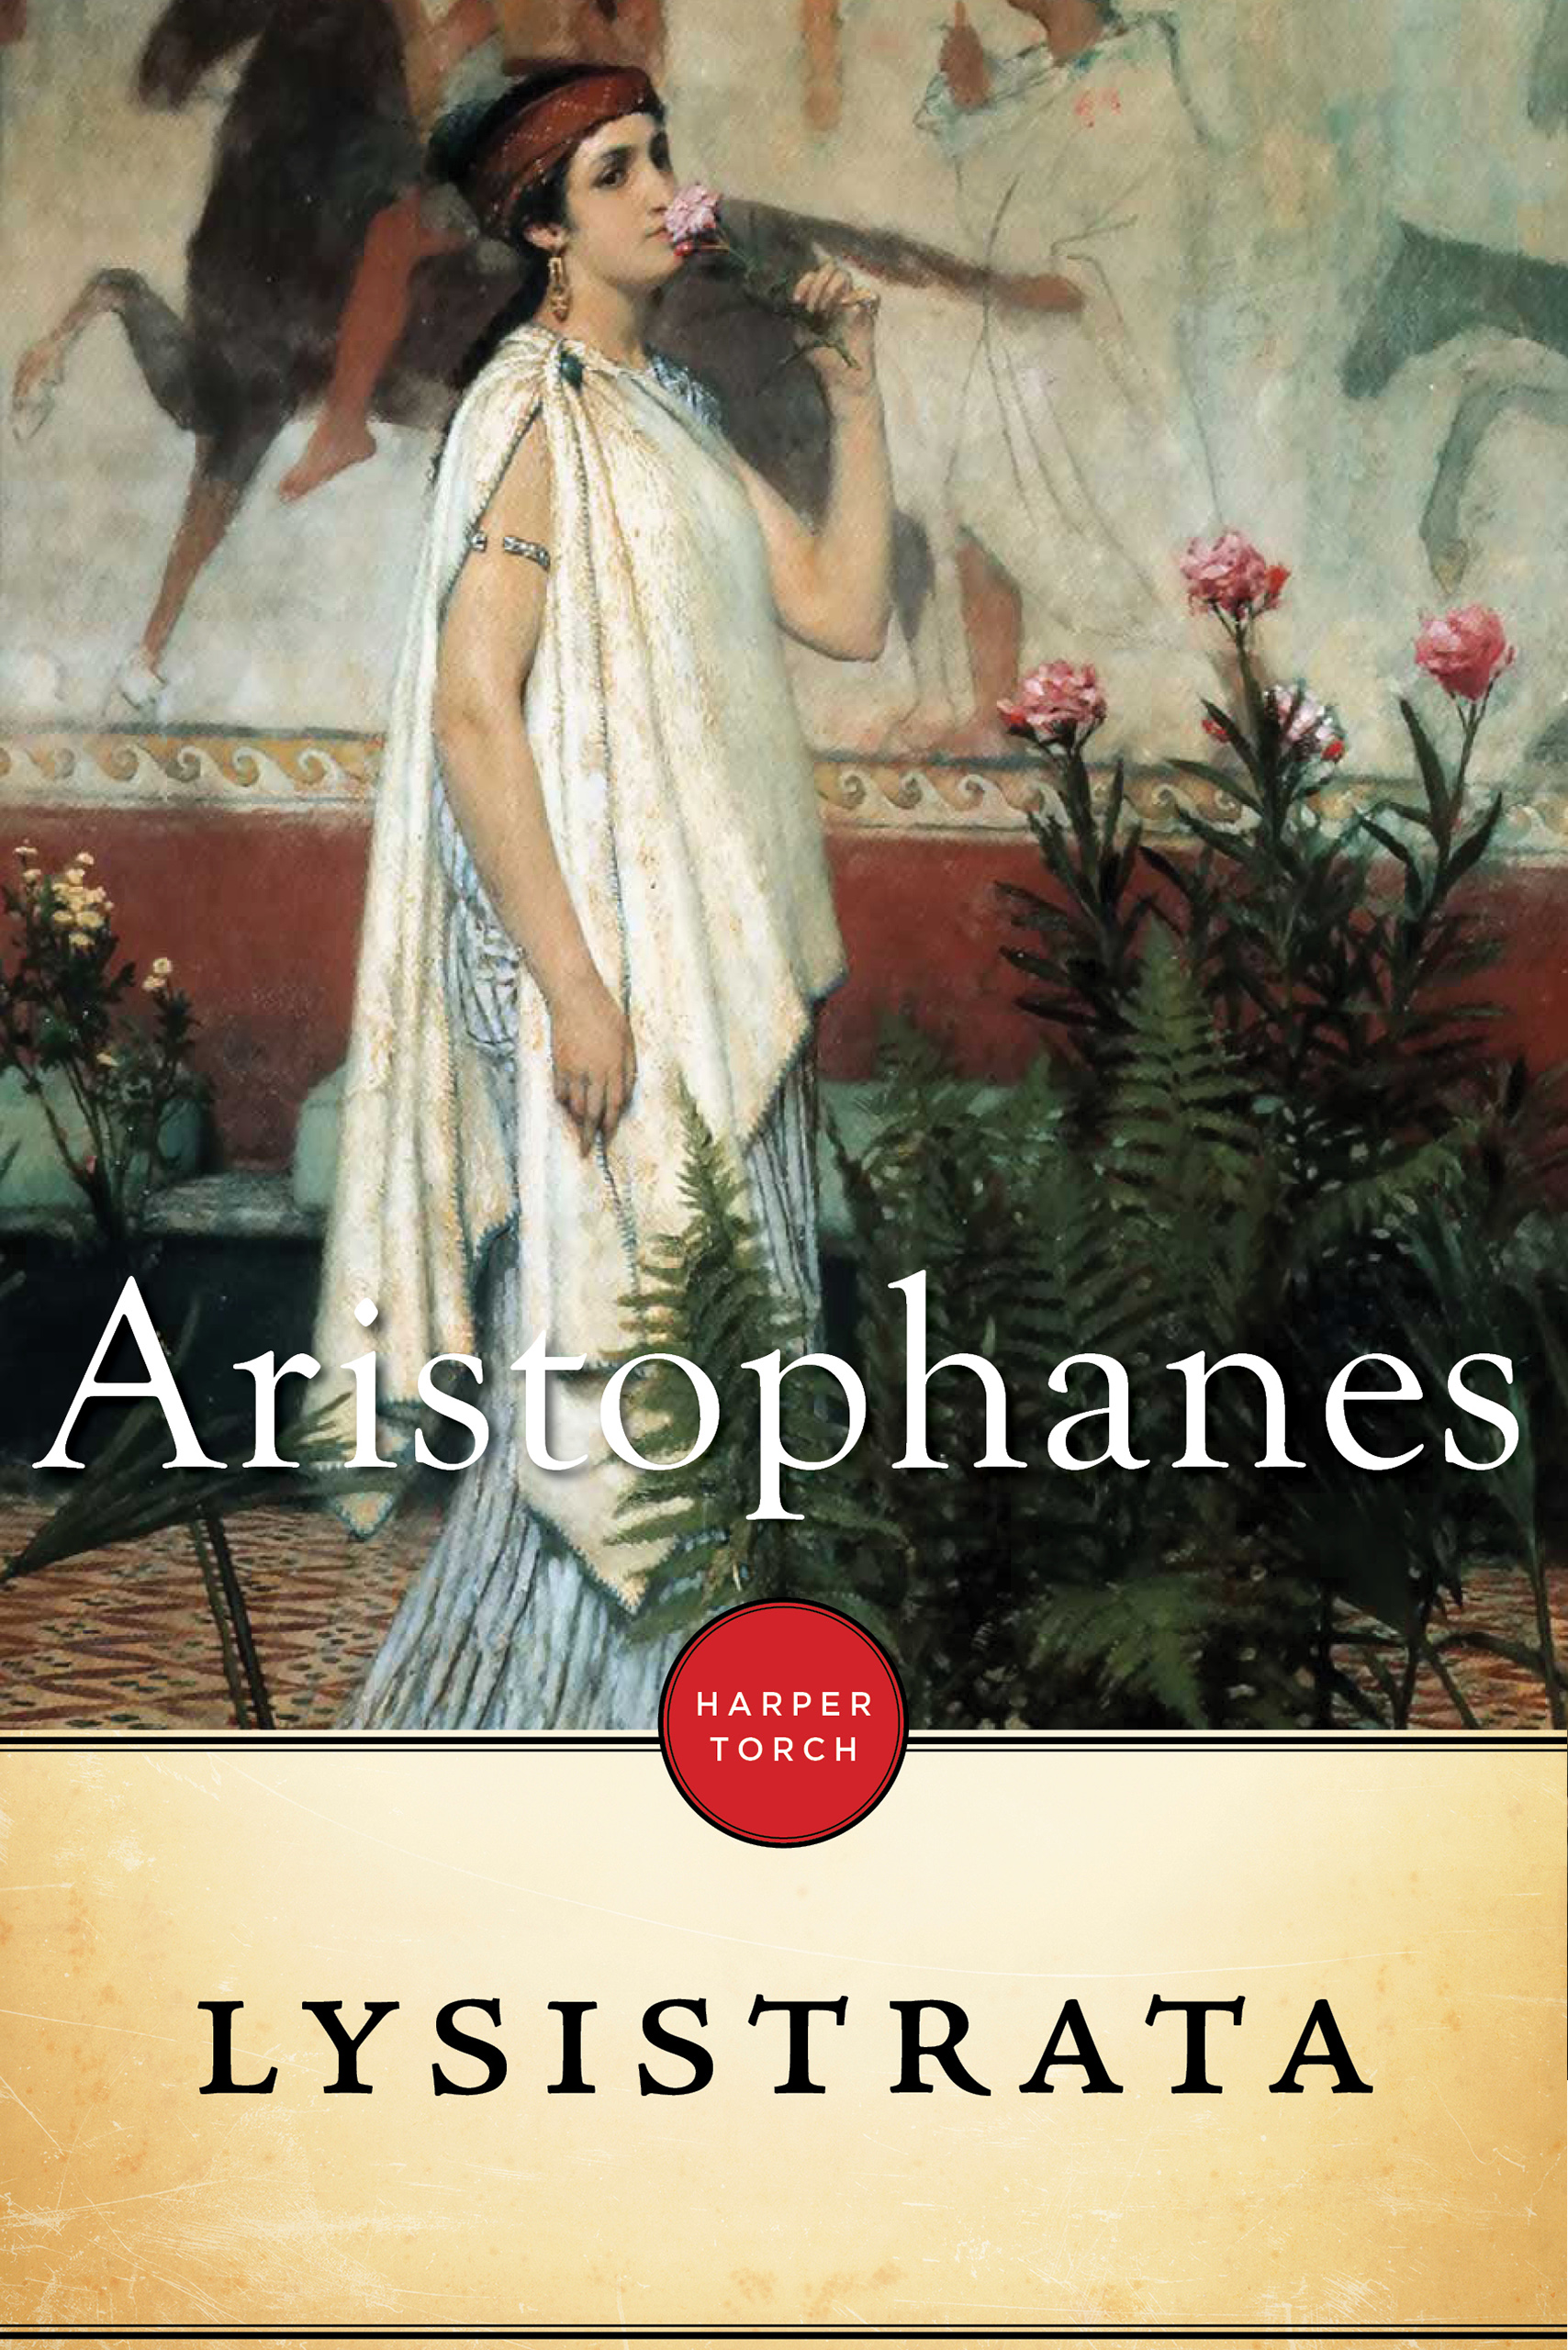 a literary analysis of lysistrata and the peloponnesian war A basic level guide to some of the best known and loved works of prose, poetry and drama from ancient greece - aristophanes.